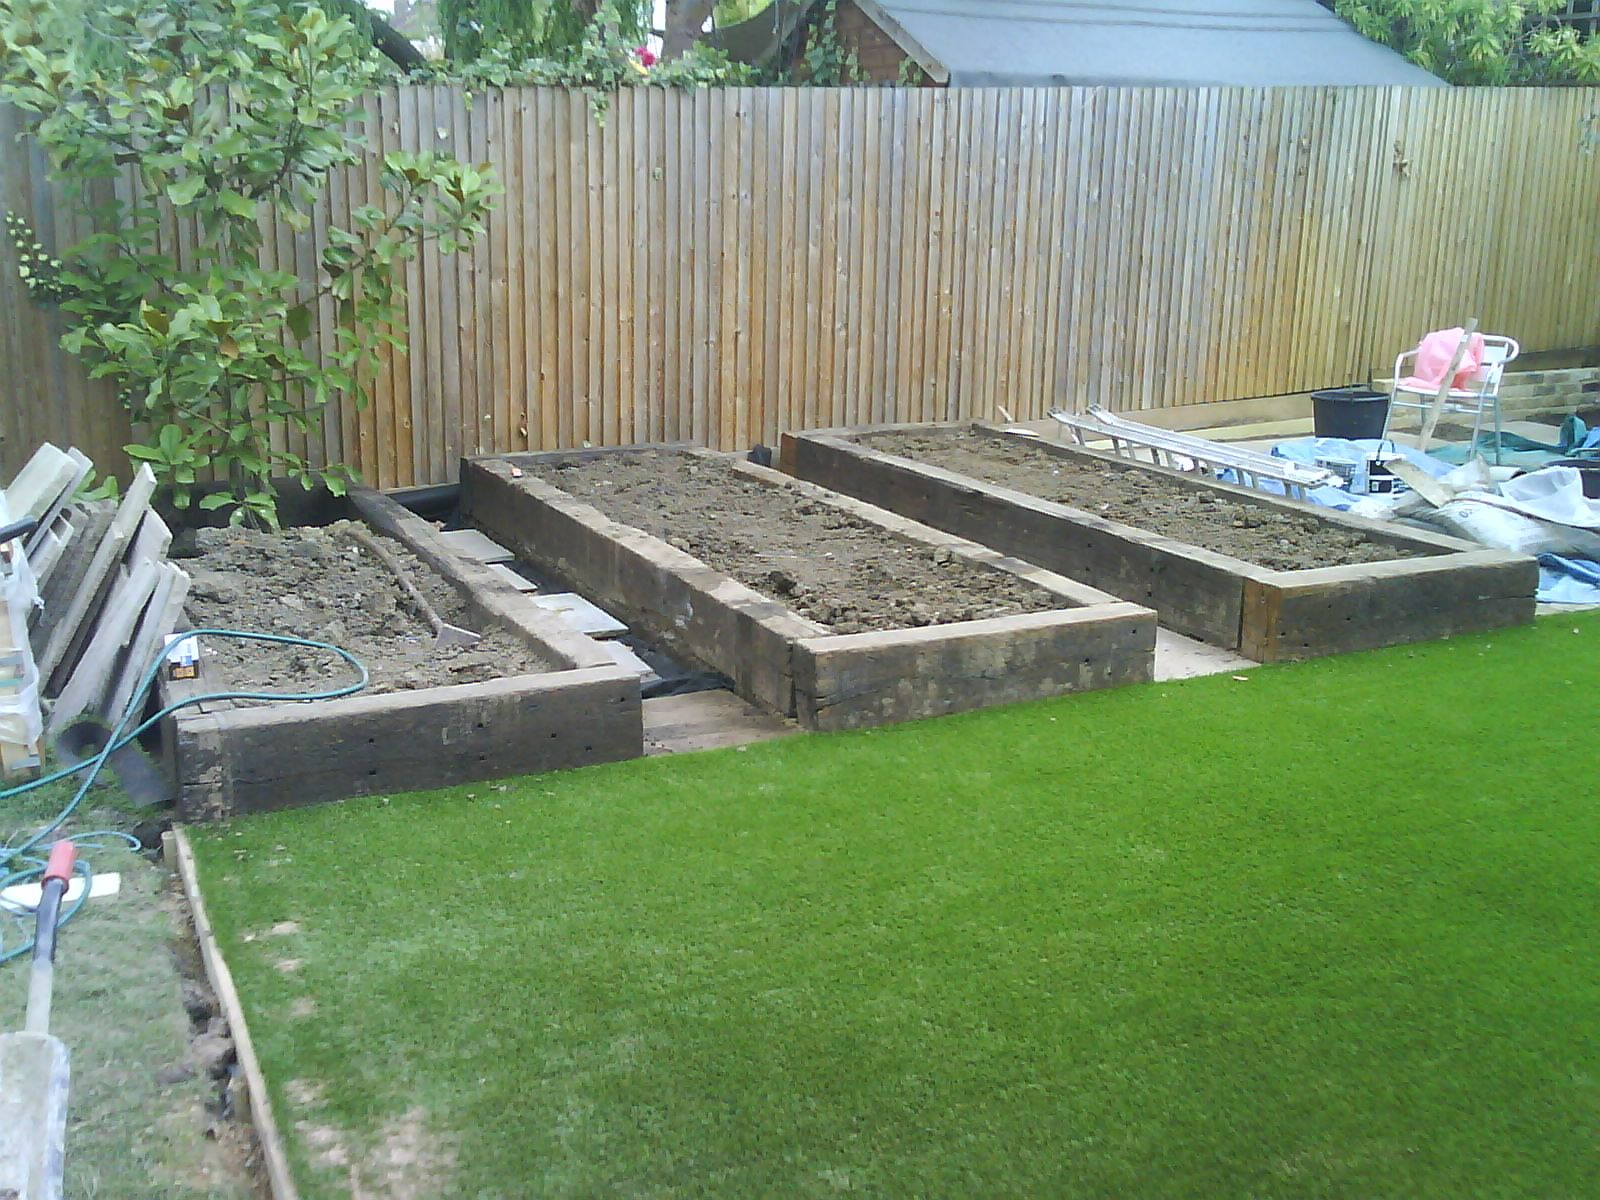 The Raised Vegetable Beds